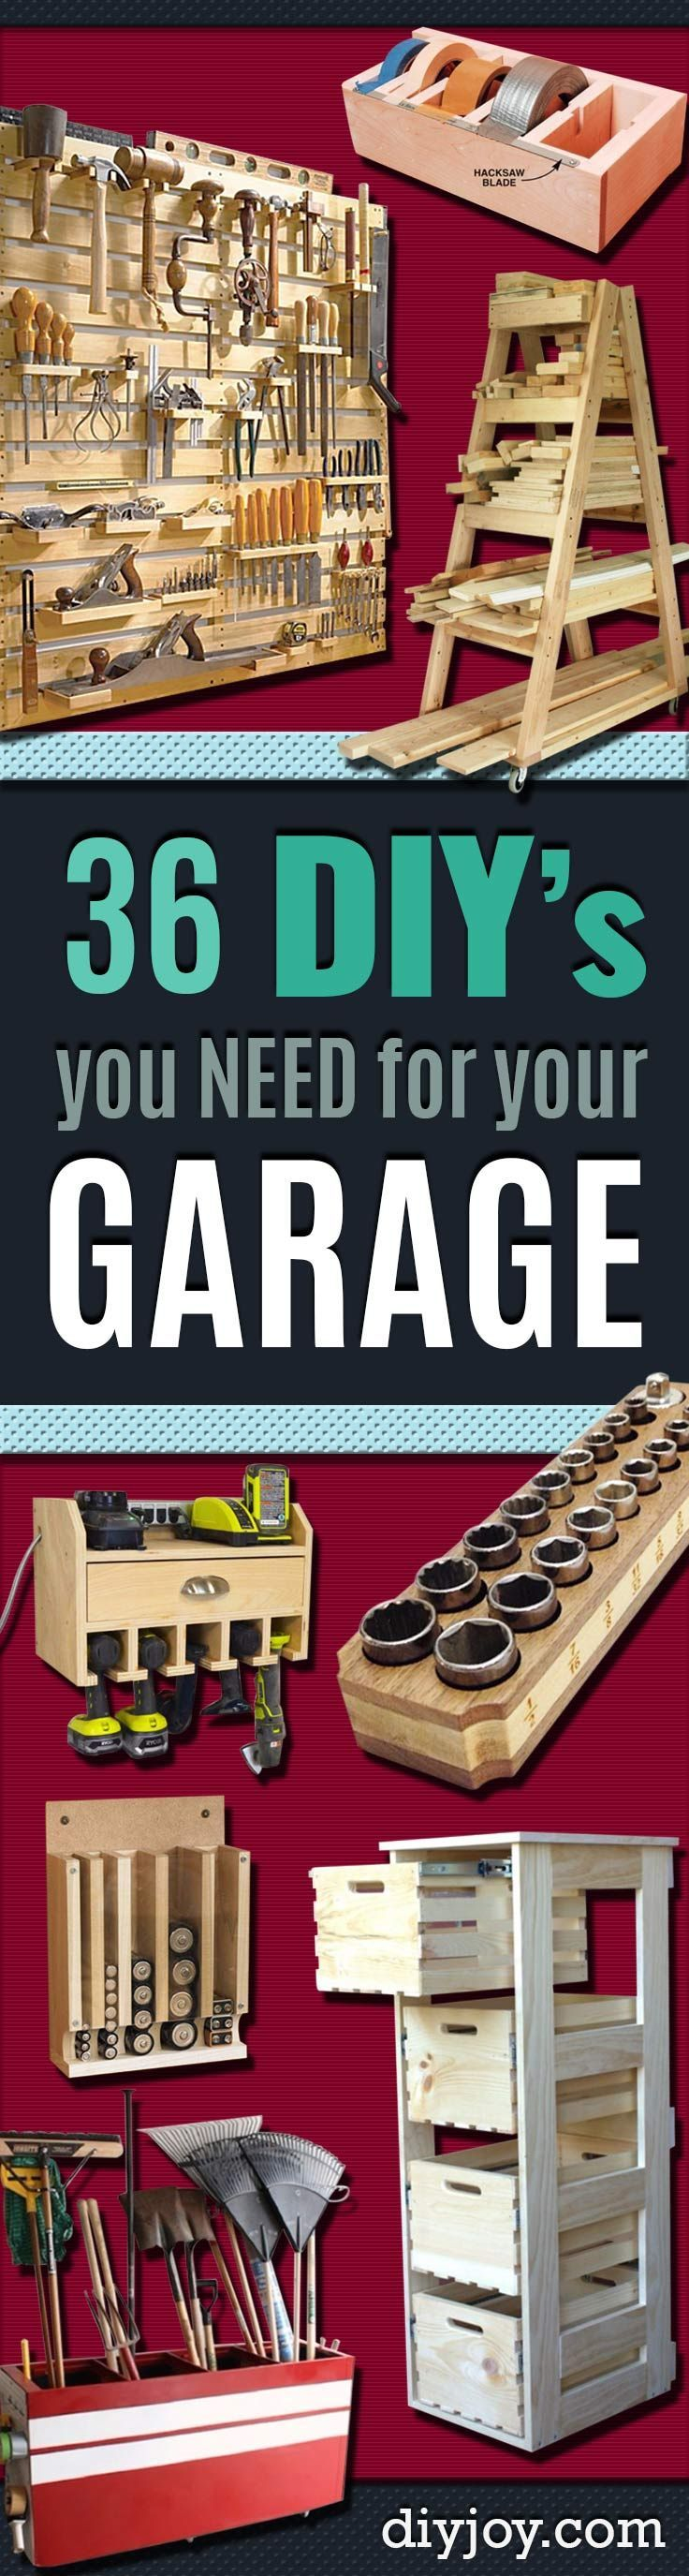 Best 10+ Garage shelving plans ideas on Pinterest | Building ...